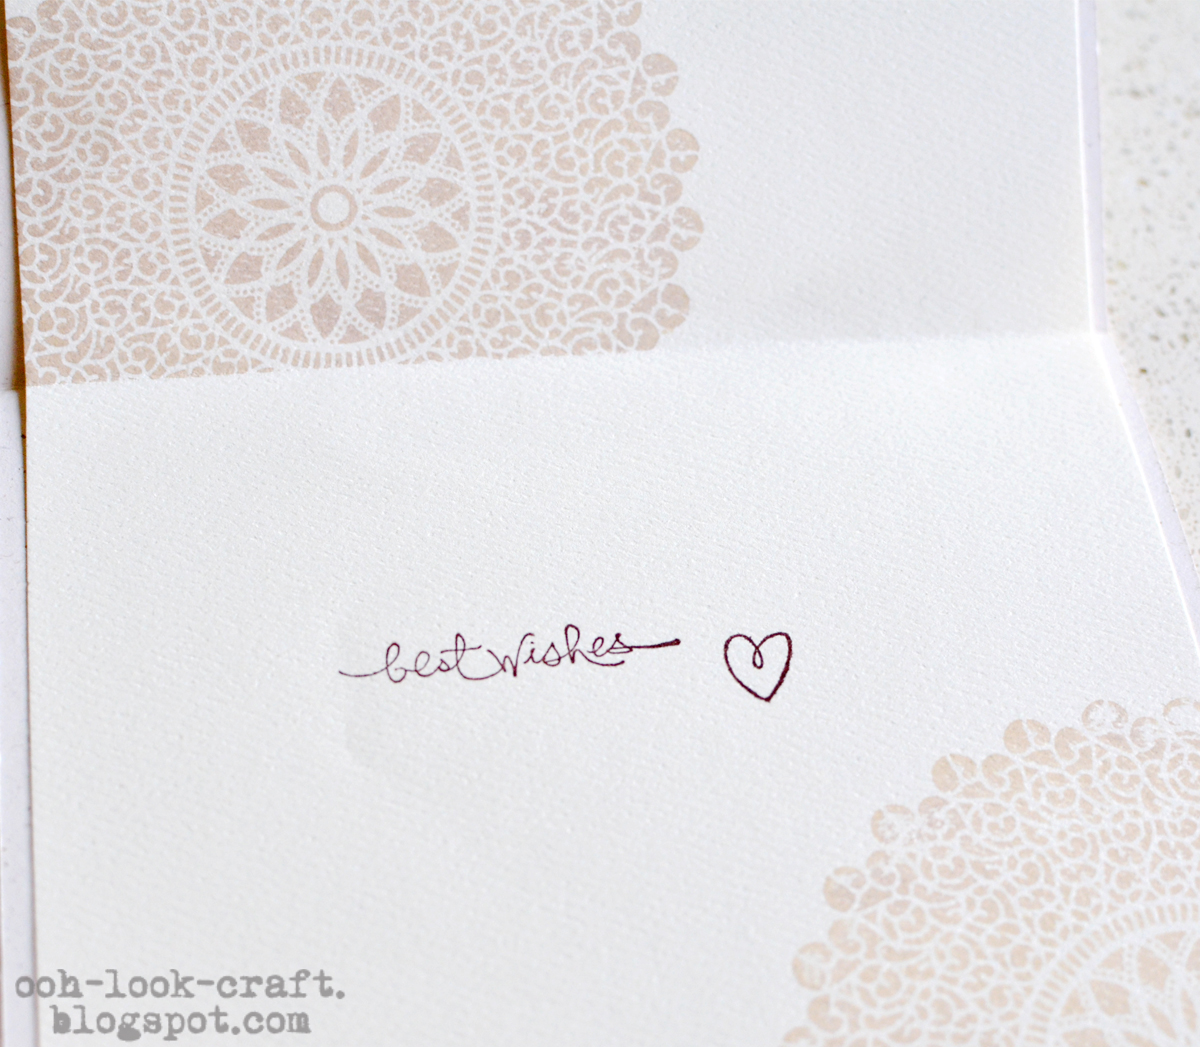 Ooh, Look - Craft: Wedding Card - Love